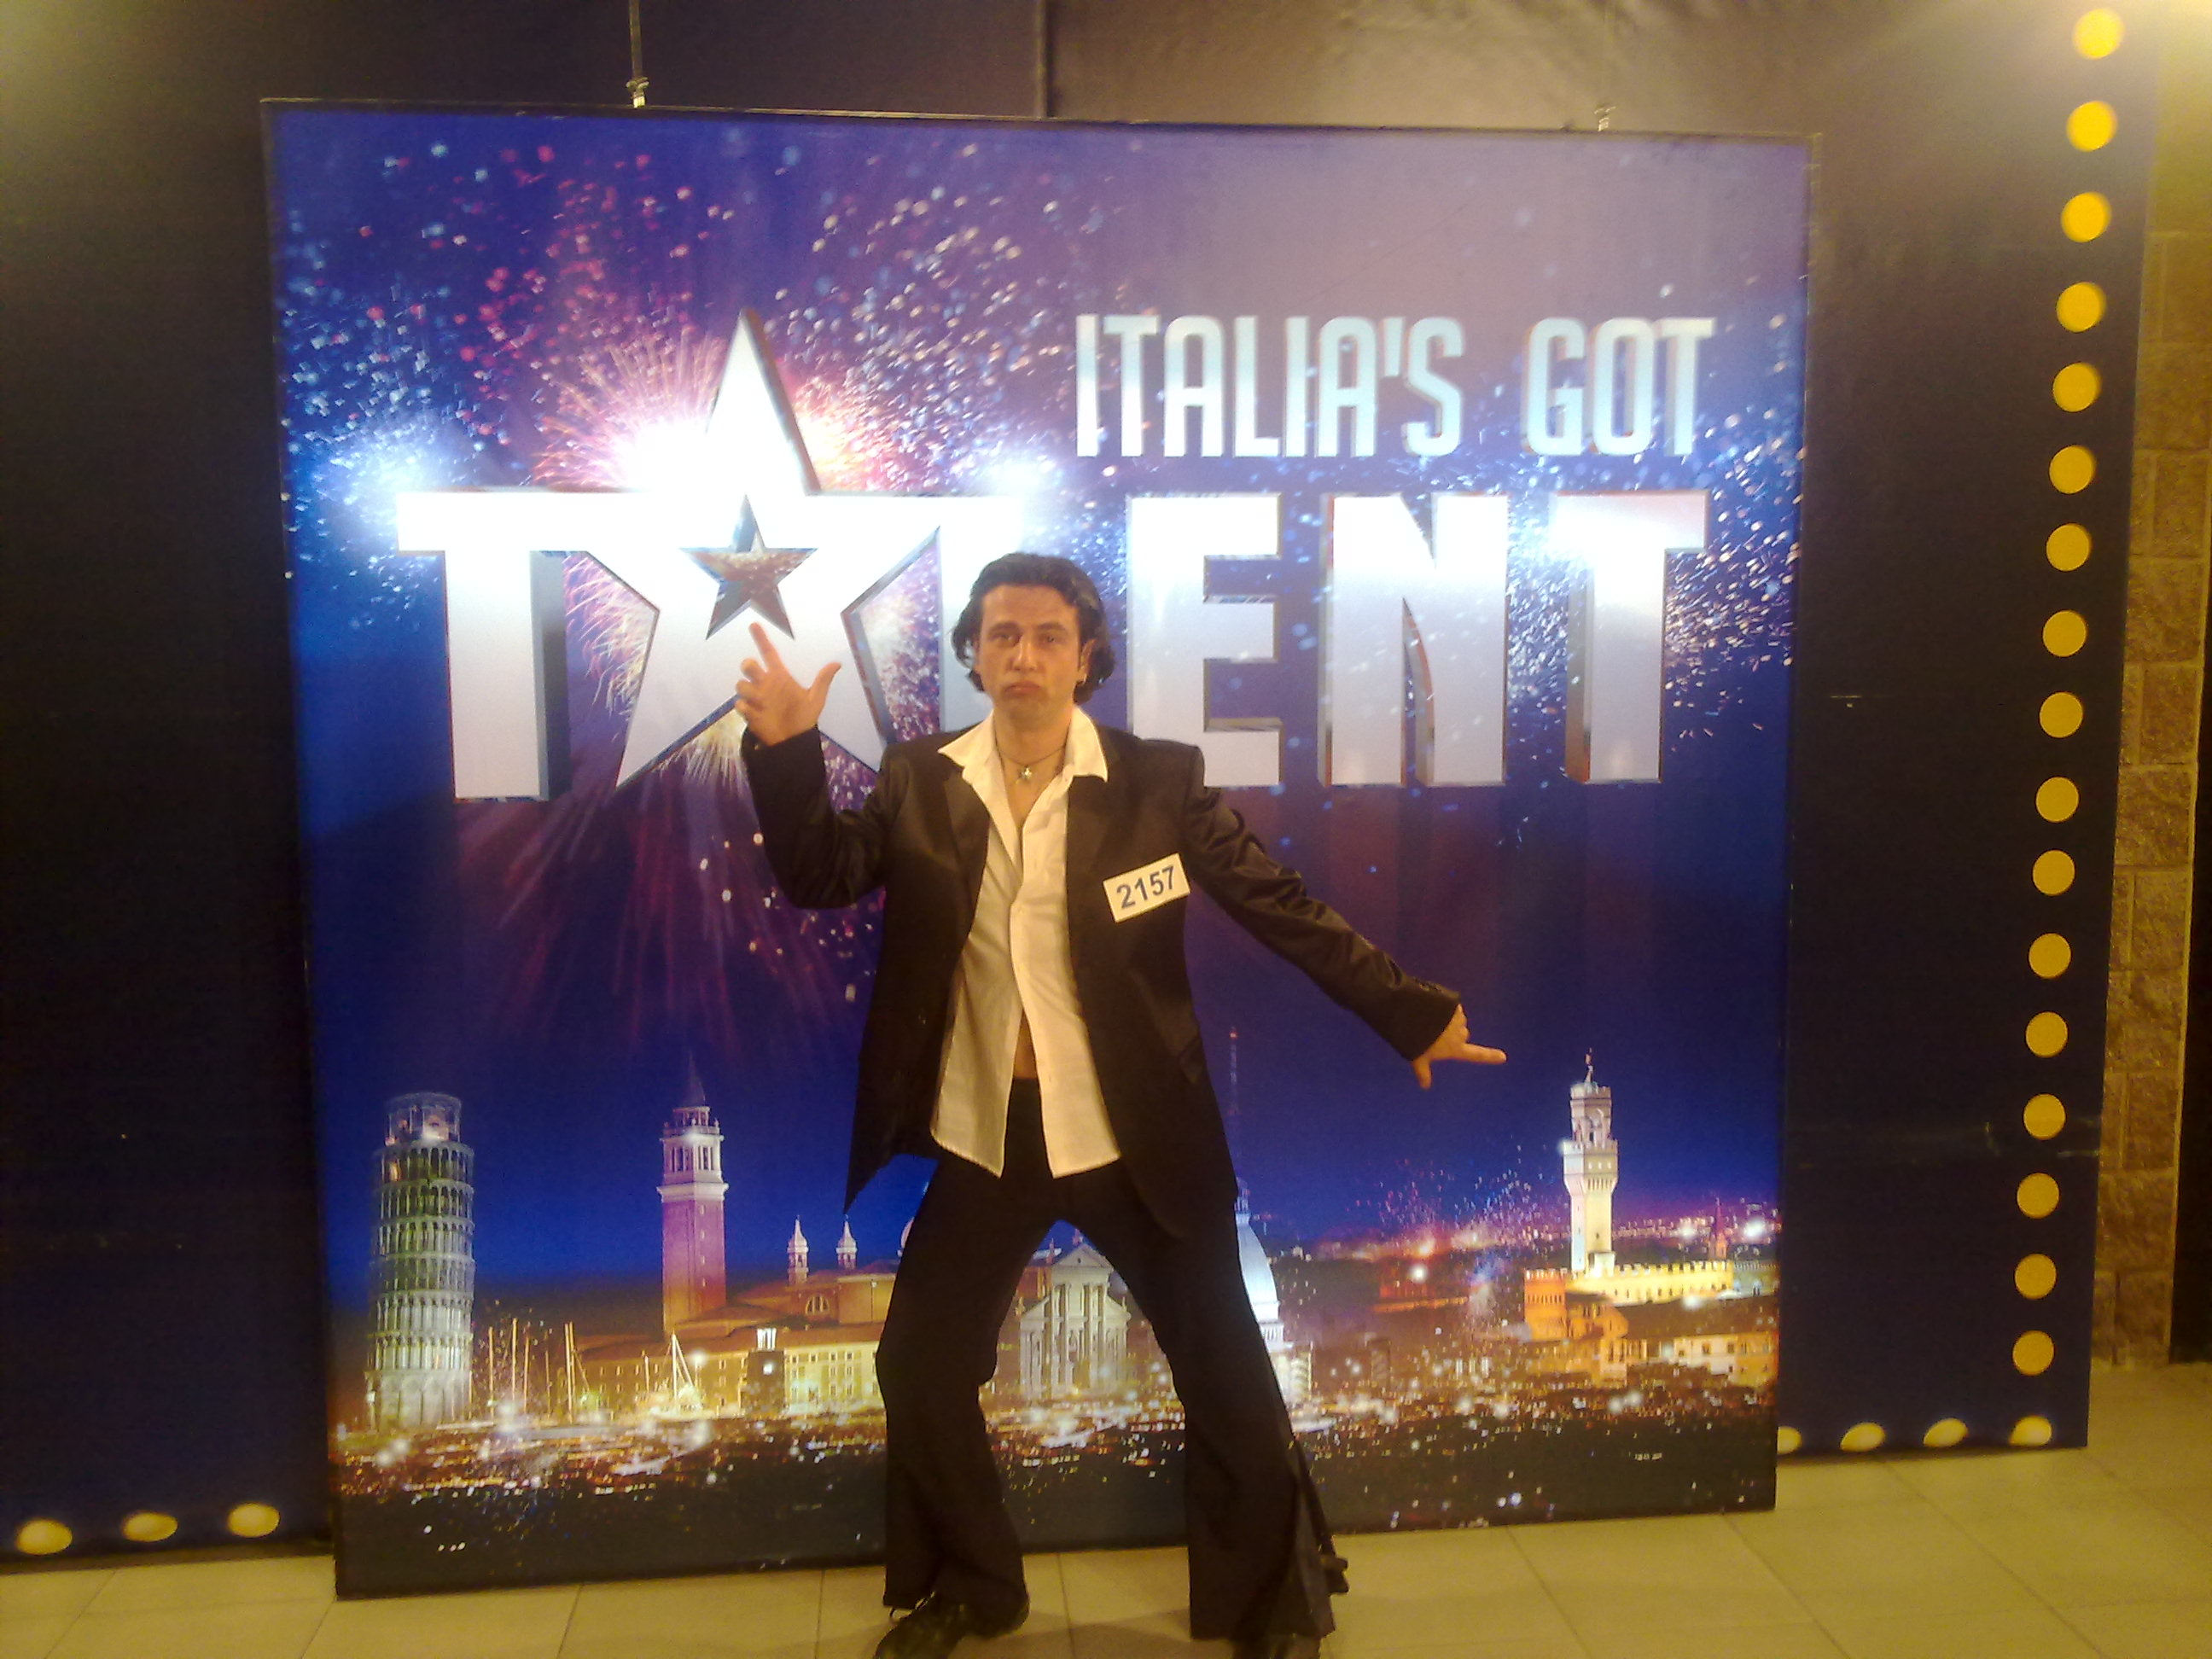 GUARDA IL VIDEO TONY MANERO A ITALIA' GOT TALENT - http://www